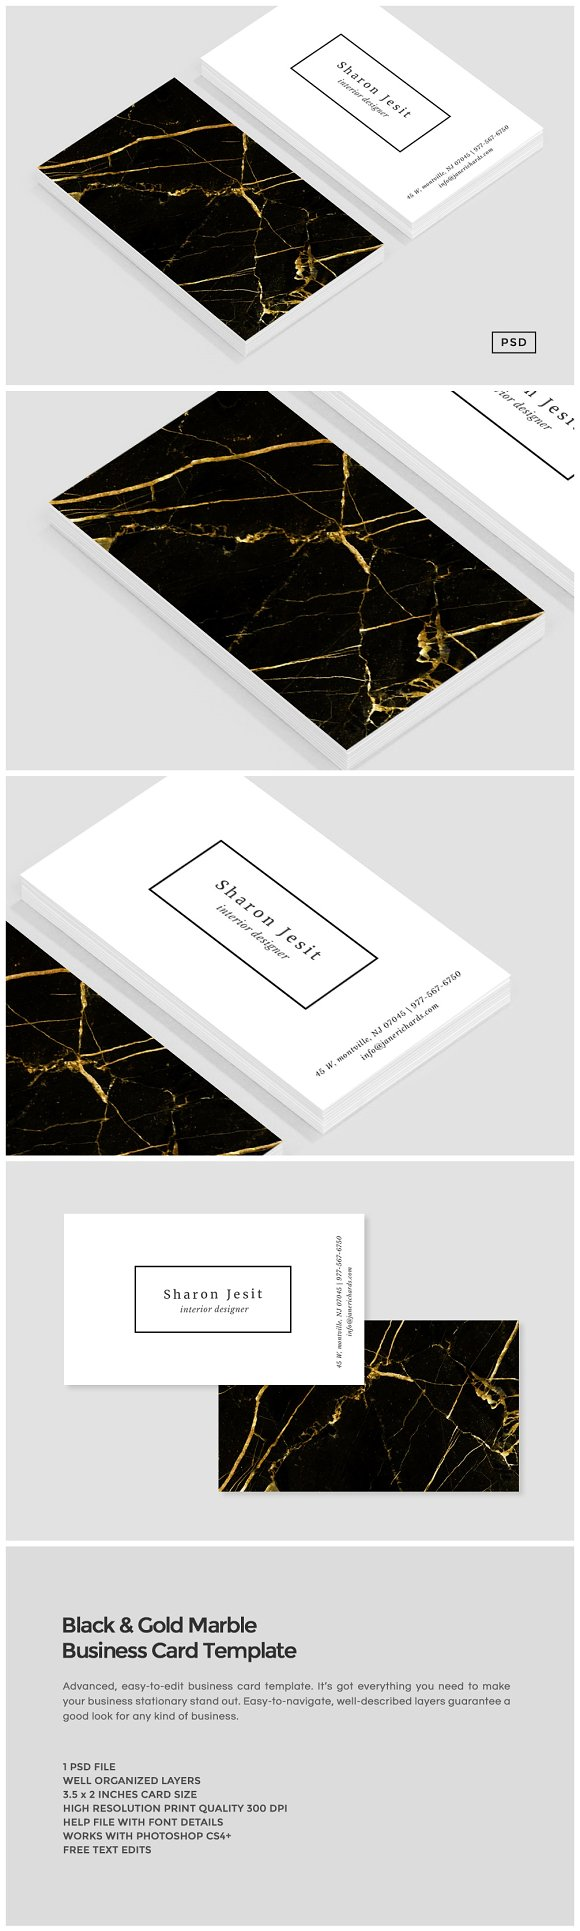 Black gold marble business card business card templates black gold marble business card business card templates creative market cheaphphosting Choice Image